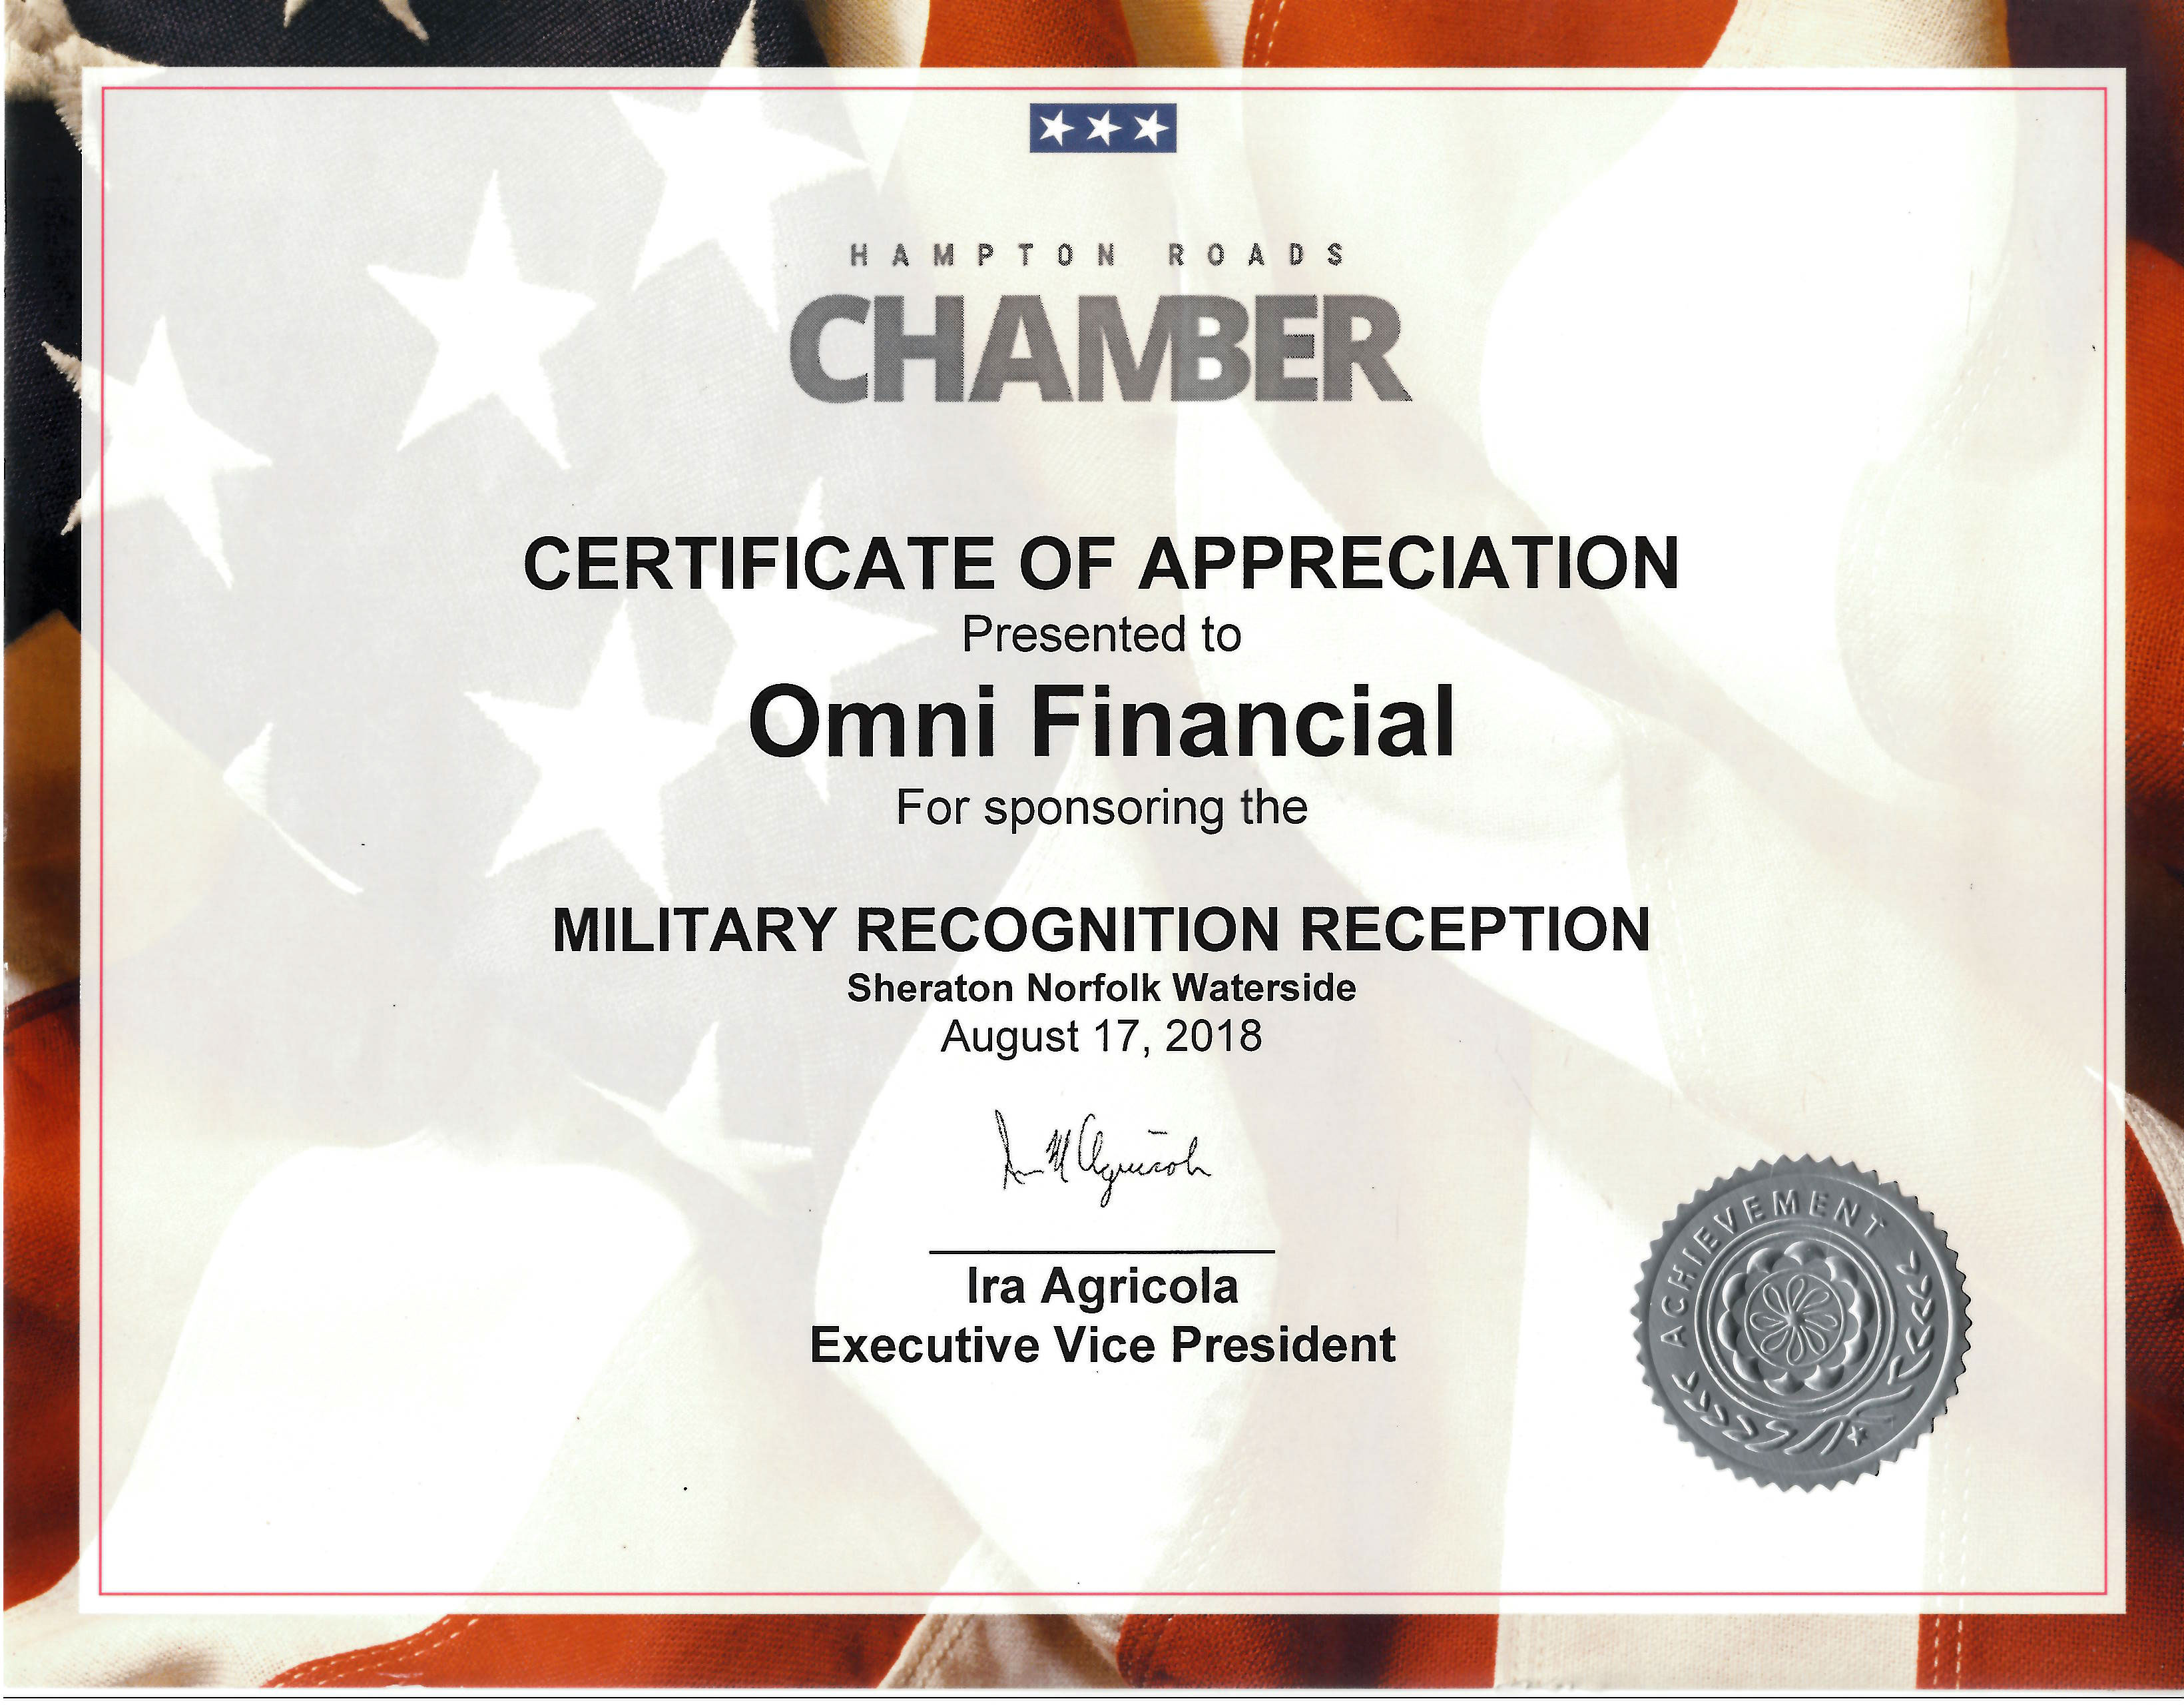 HRCC Military Recognition Reception